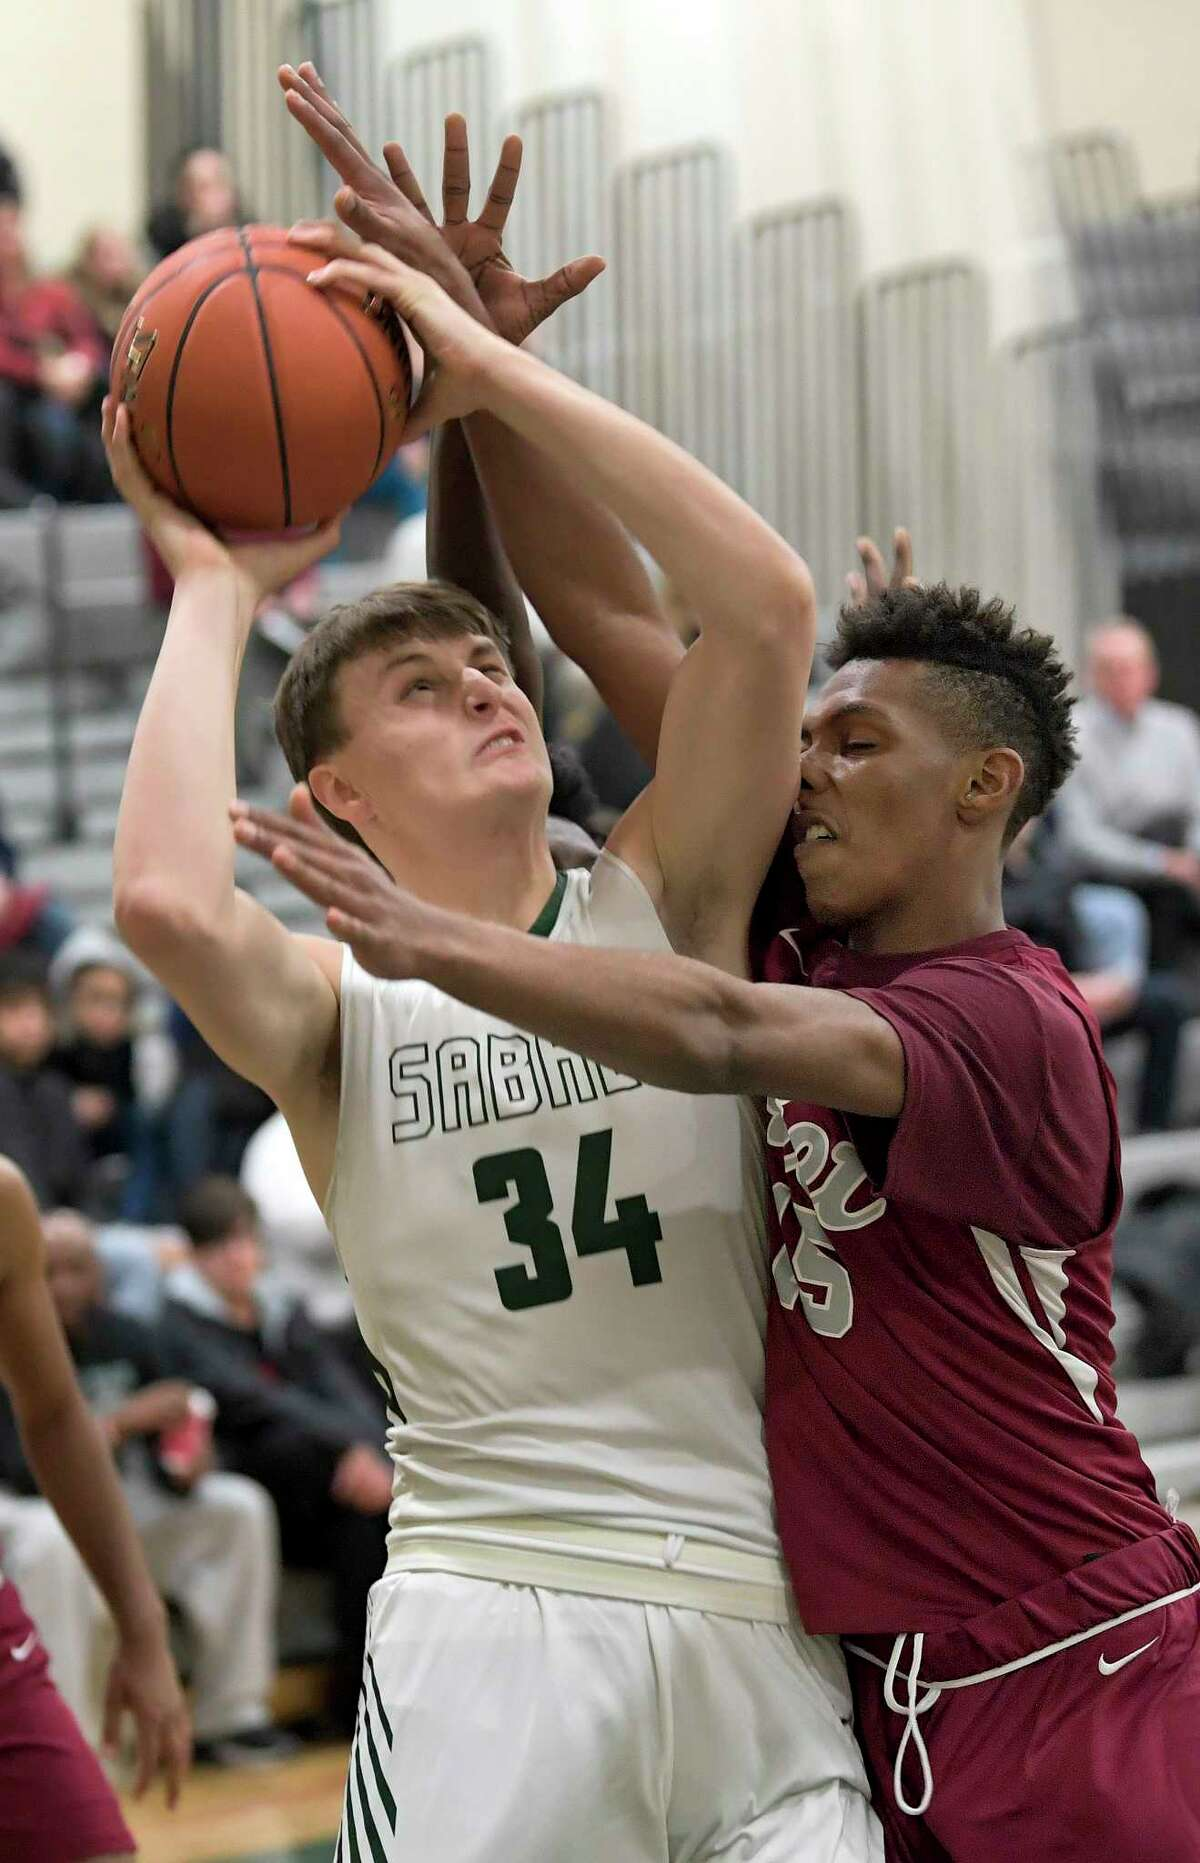 Schalmont's Shane O'Dell (34) is defended by Watervliet's Jadon Dickson (15) during the first half of a Section II boys' basketball game Friday, Dec. 20, 2019, in Rotterdam, N.Y. (Hans Pennink / Special to the Times Union) ORG XMIT: 122119_hsbb_HP102